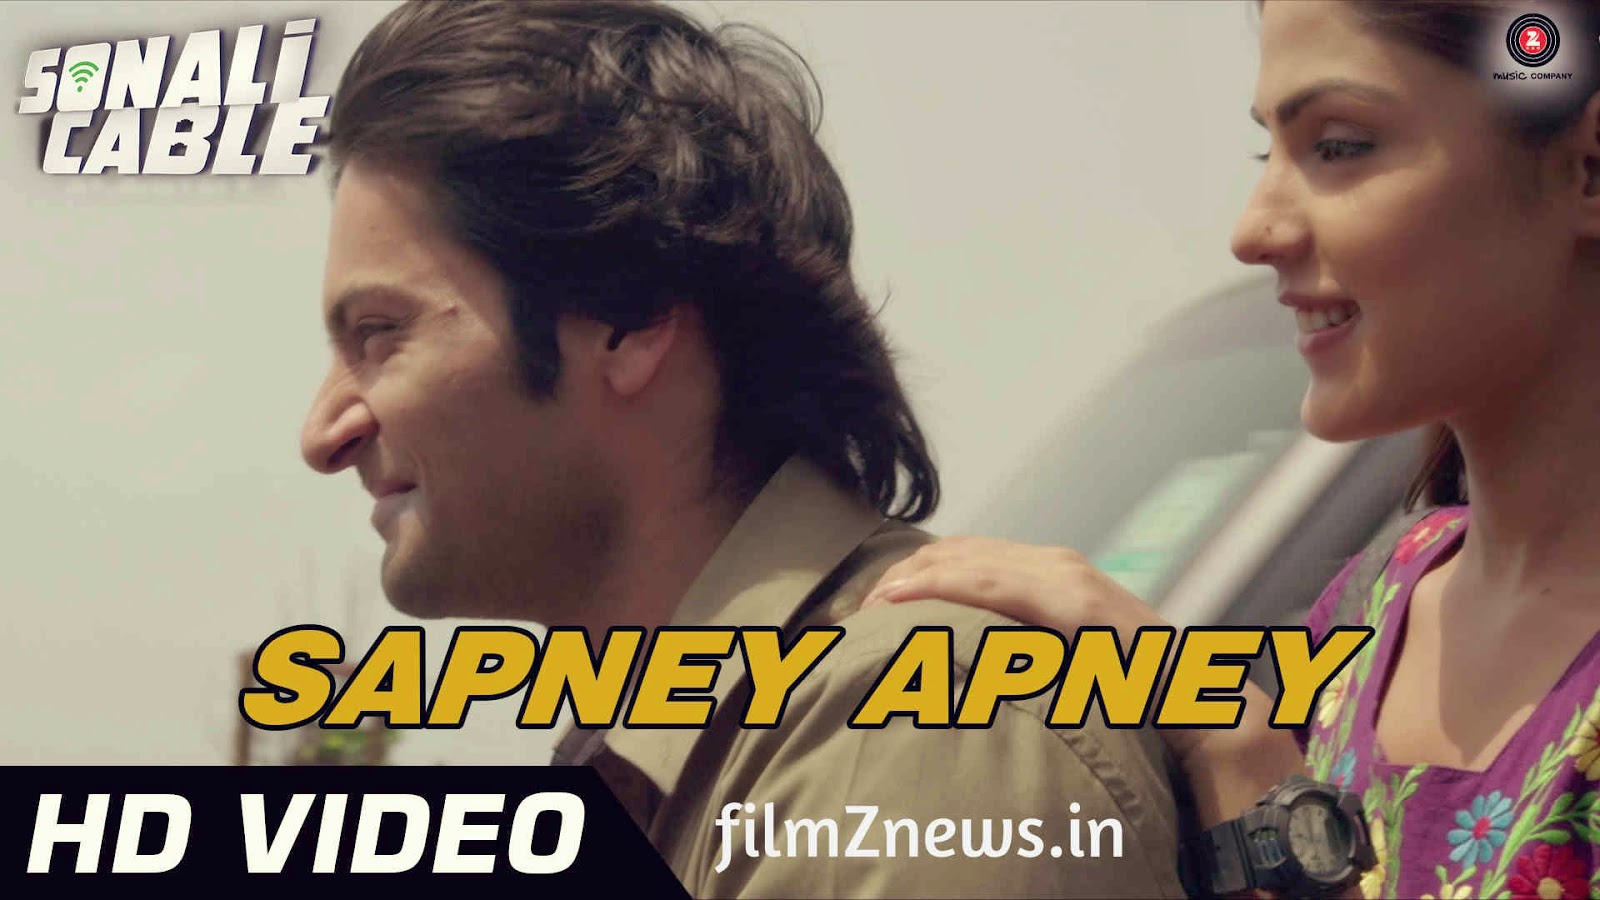 Sapney Apney Videe song from Sonali Cable (2014) - Ali Fazal & Rhea Chakraborty